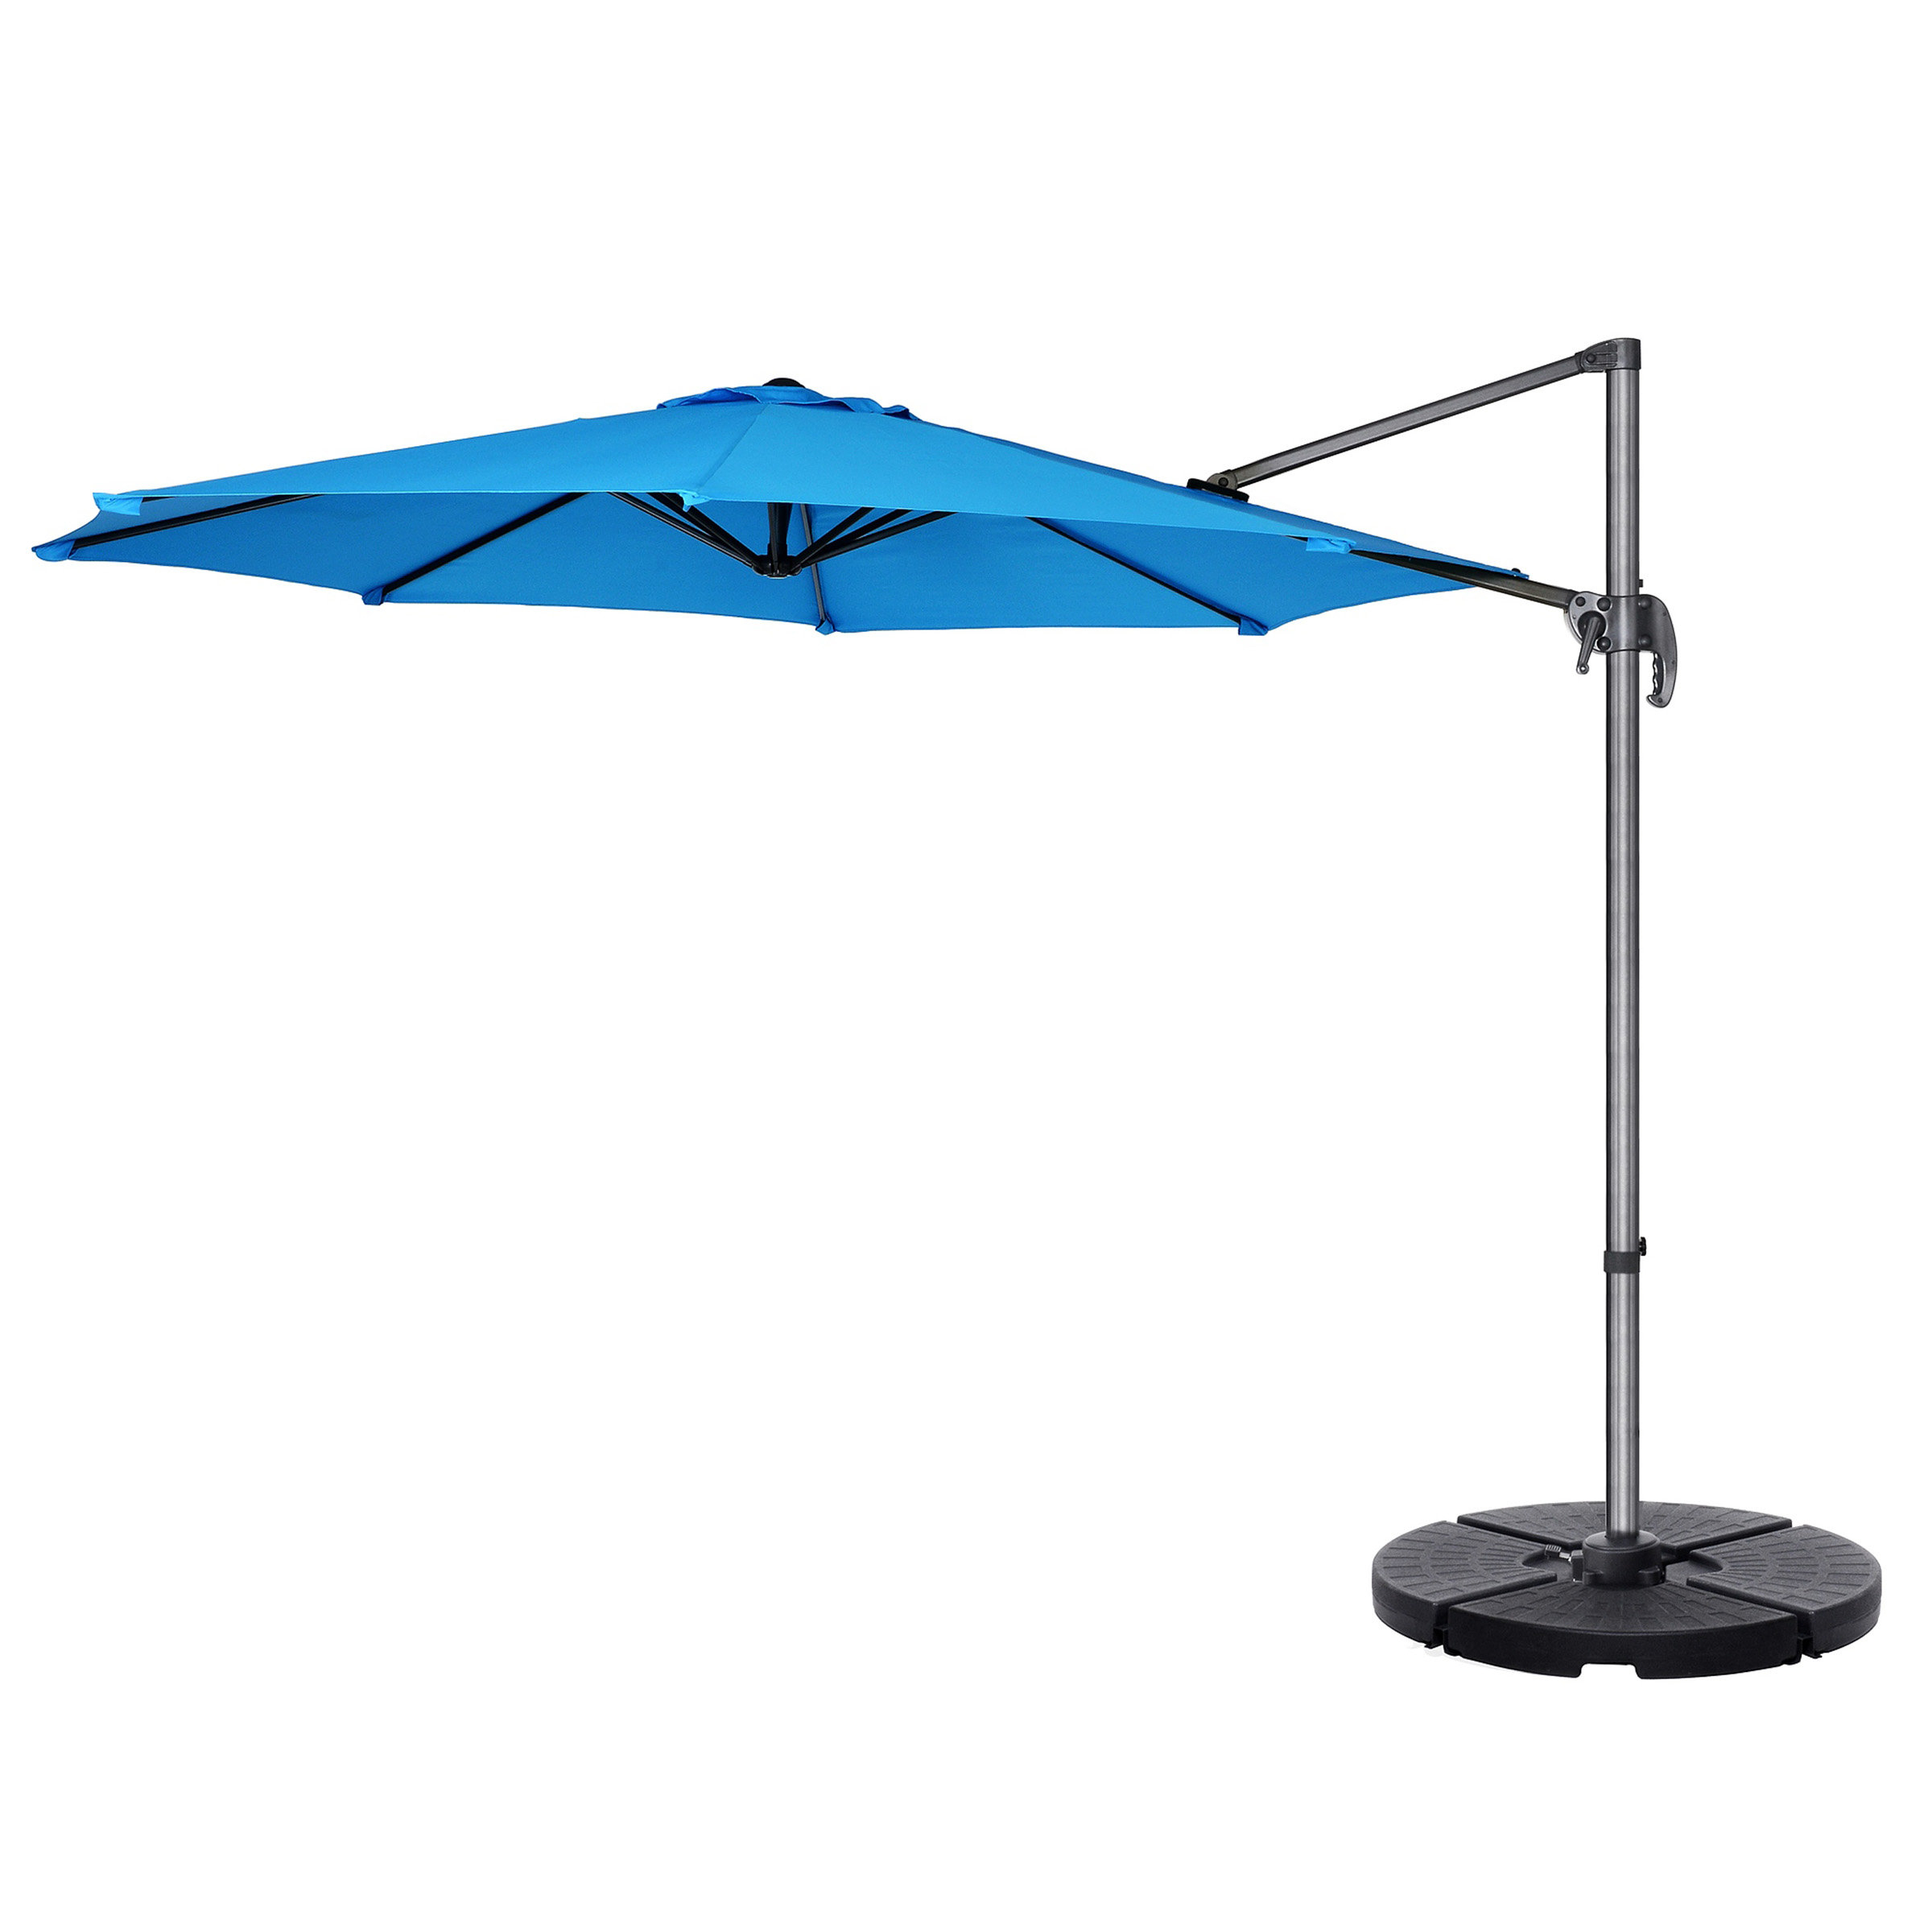 Cockermouth Rotating 10' Cantilever Umbrella Pertaining To Famous Iyanna Cantilever Umbrellas (View 11 of 20)